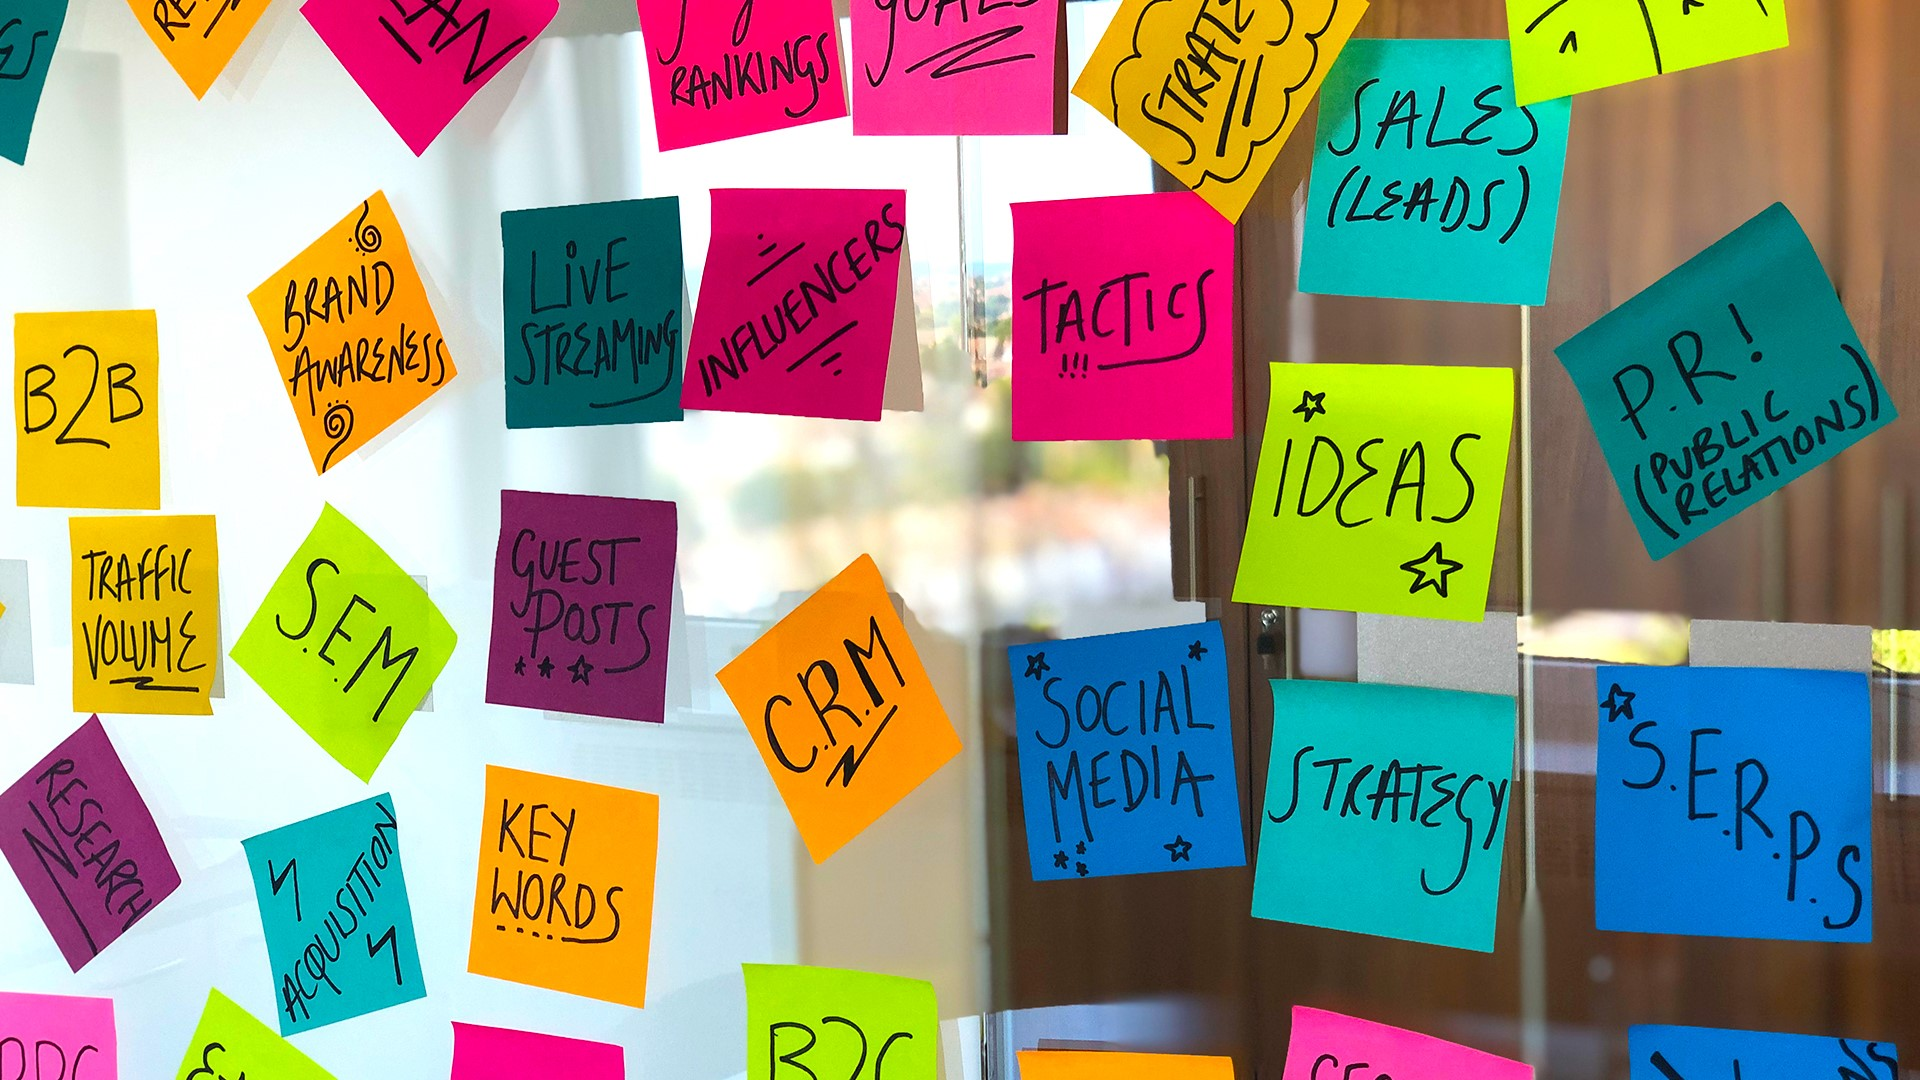 Post it notes with marketing terms written